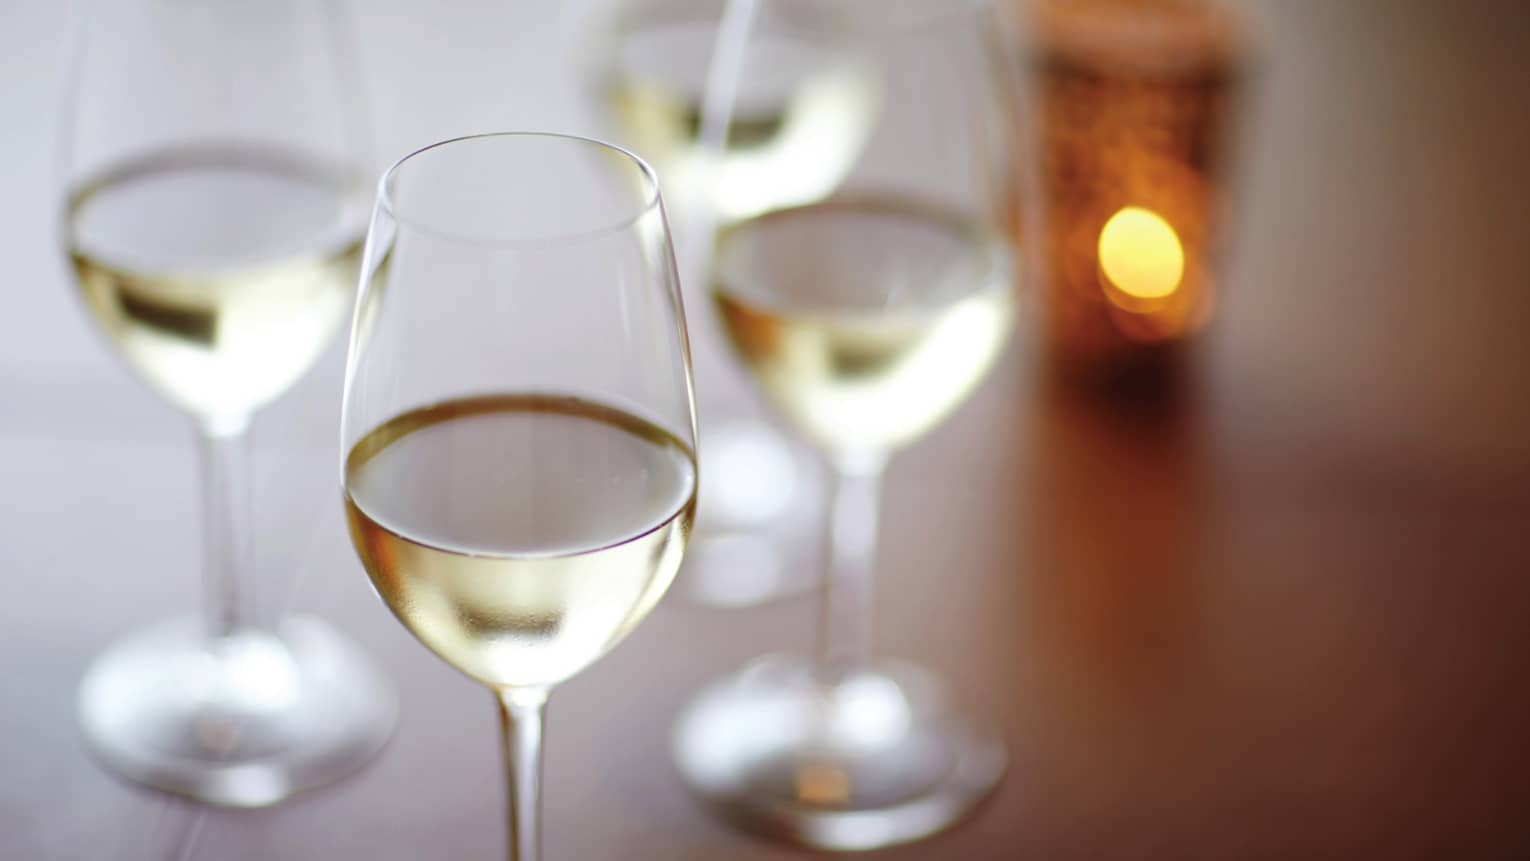 Rows of white wine glasses on table